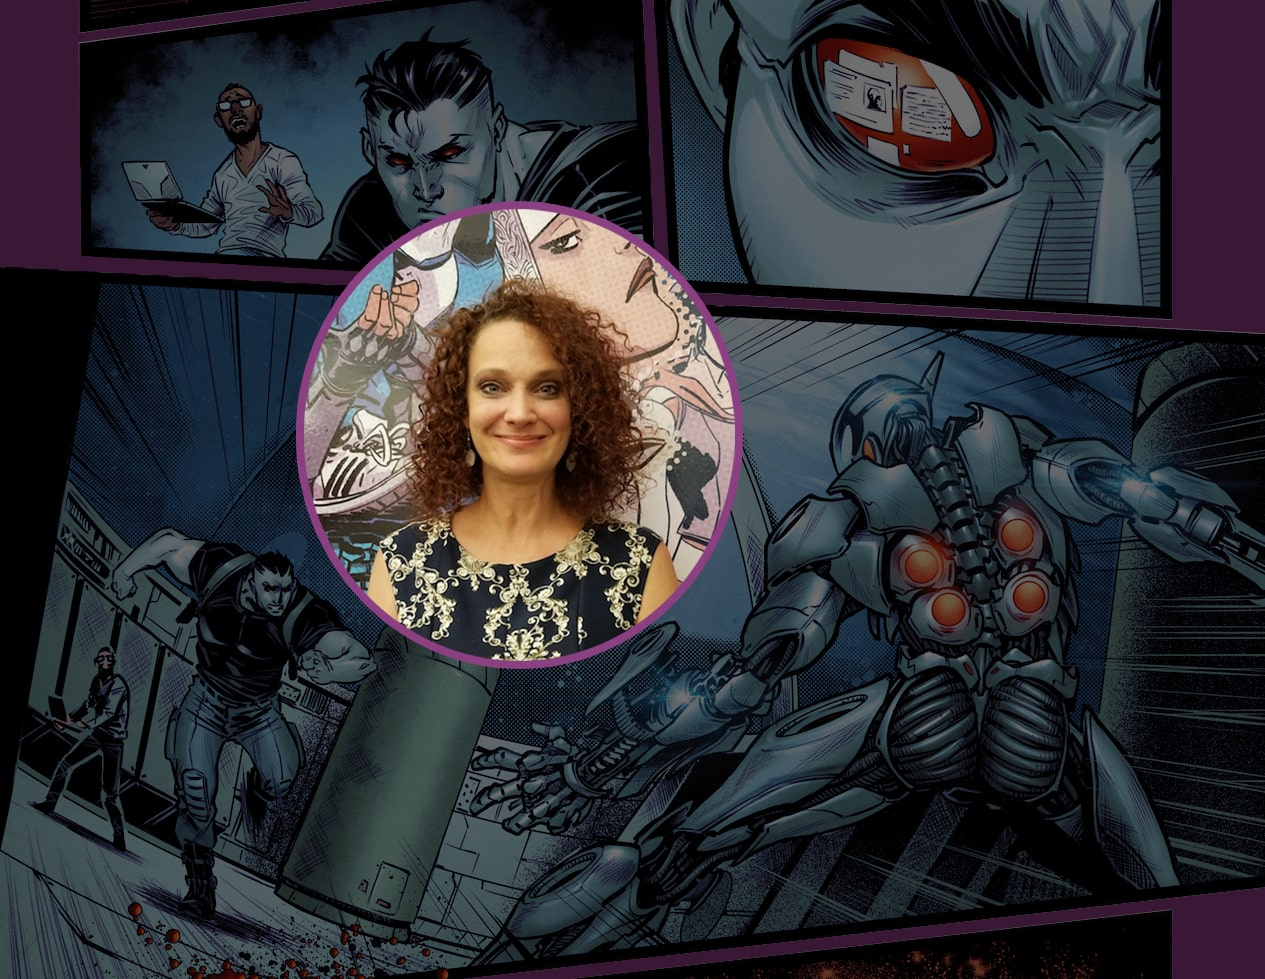 """Being good at spinning plates:"" Catching up with Valiant senior editor Lysa Hawkins"